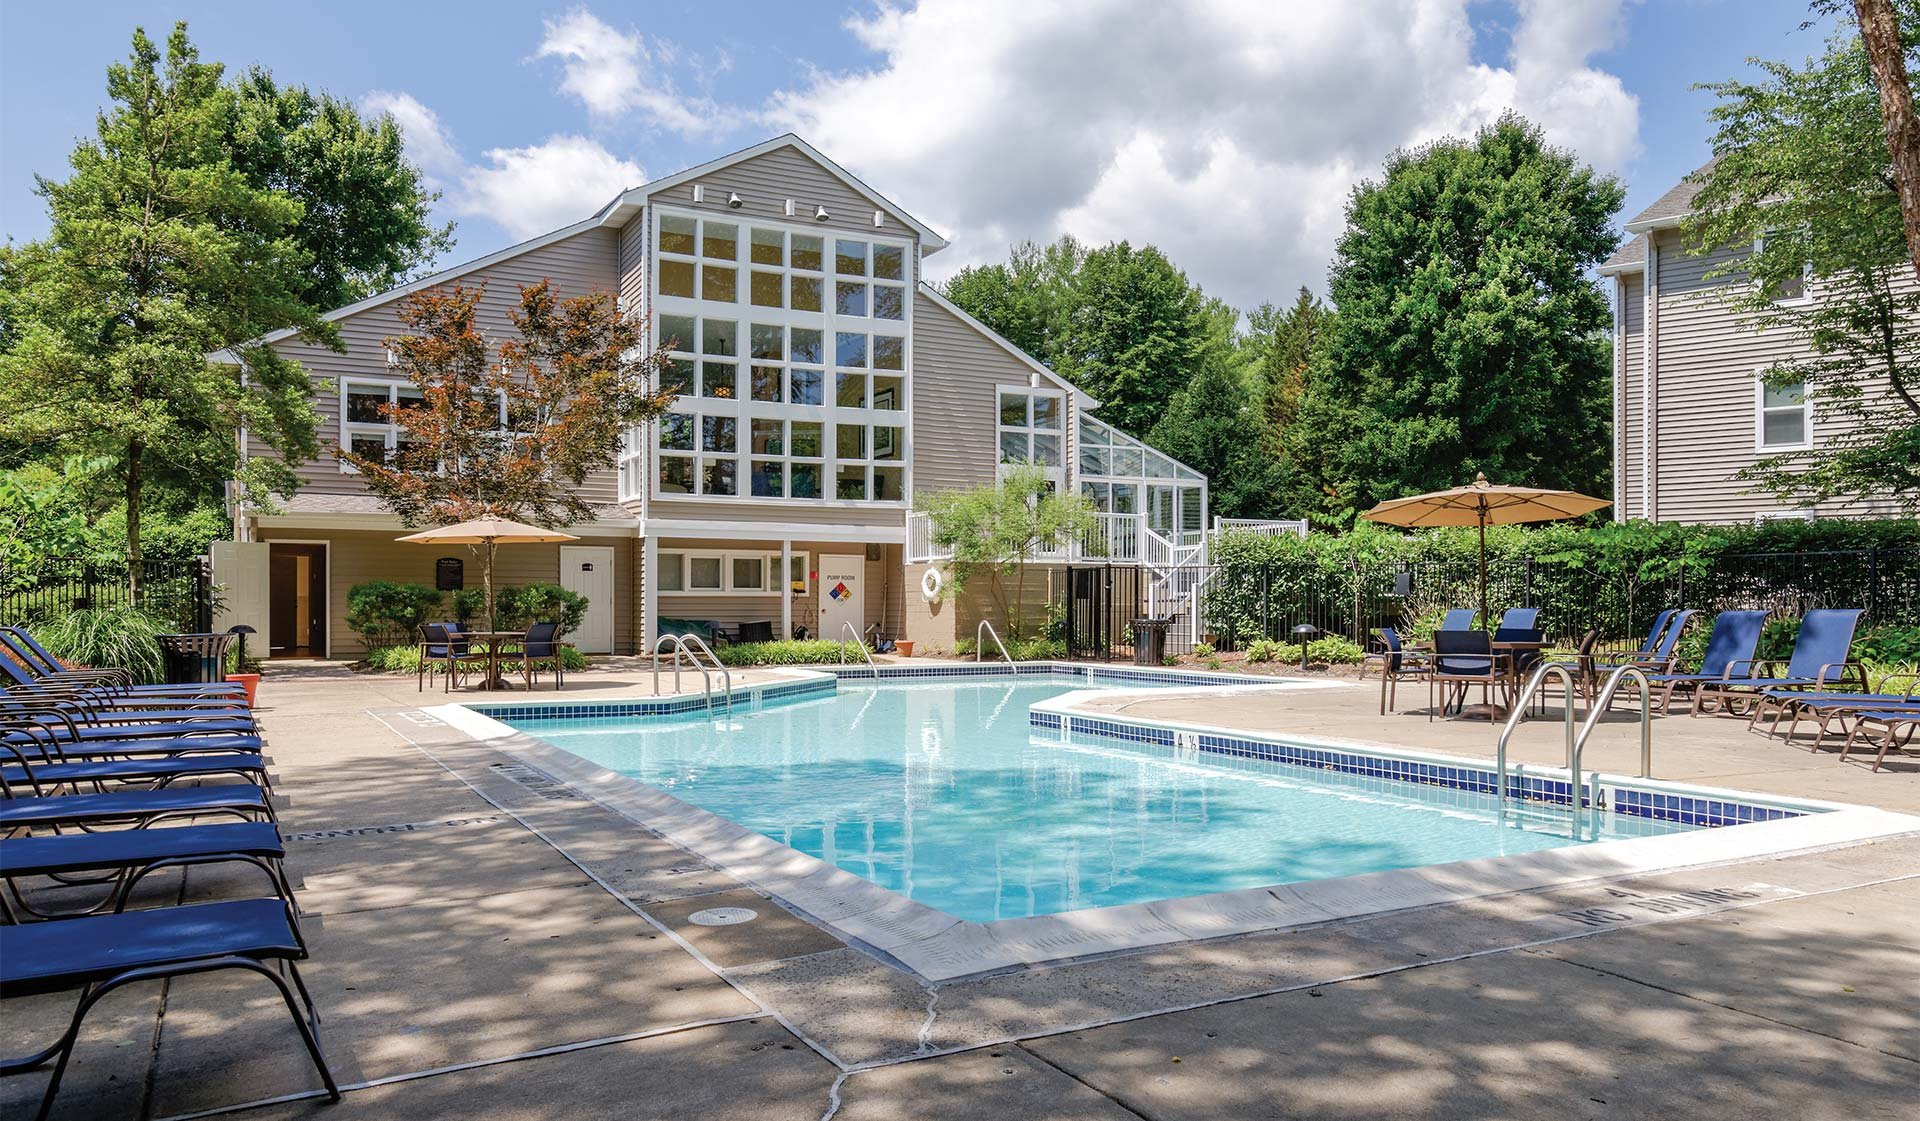 Burke Shire Commons Apartments - View of pool surrounded by chairs with clubhouse in background - Burke, Virginia